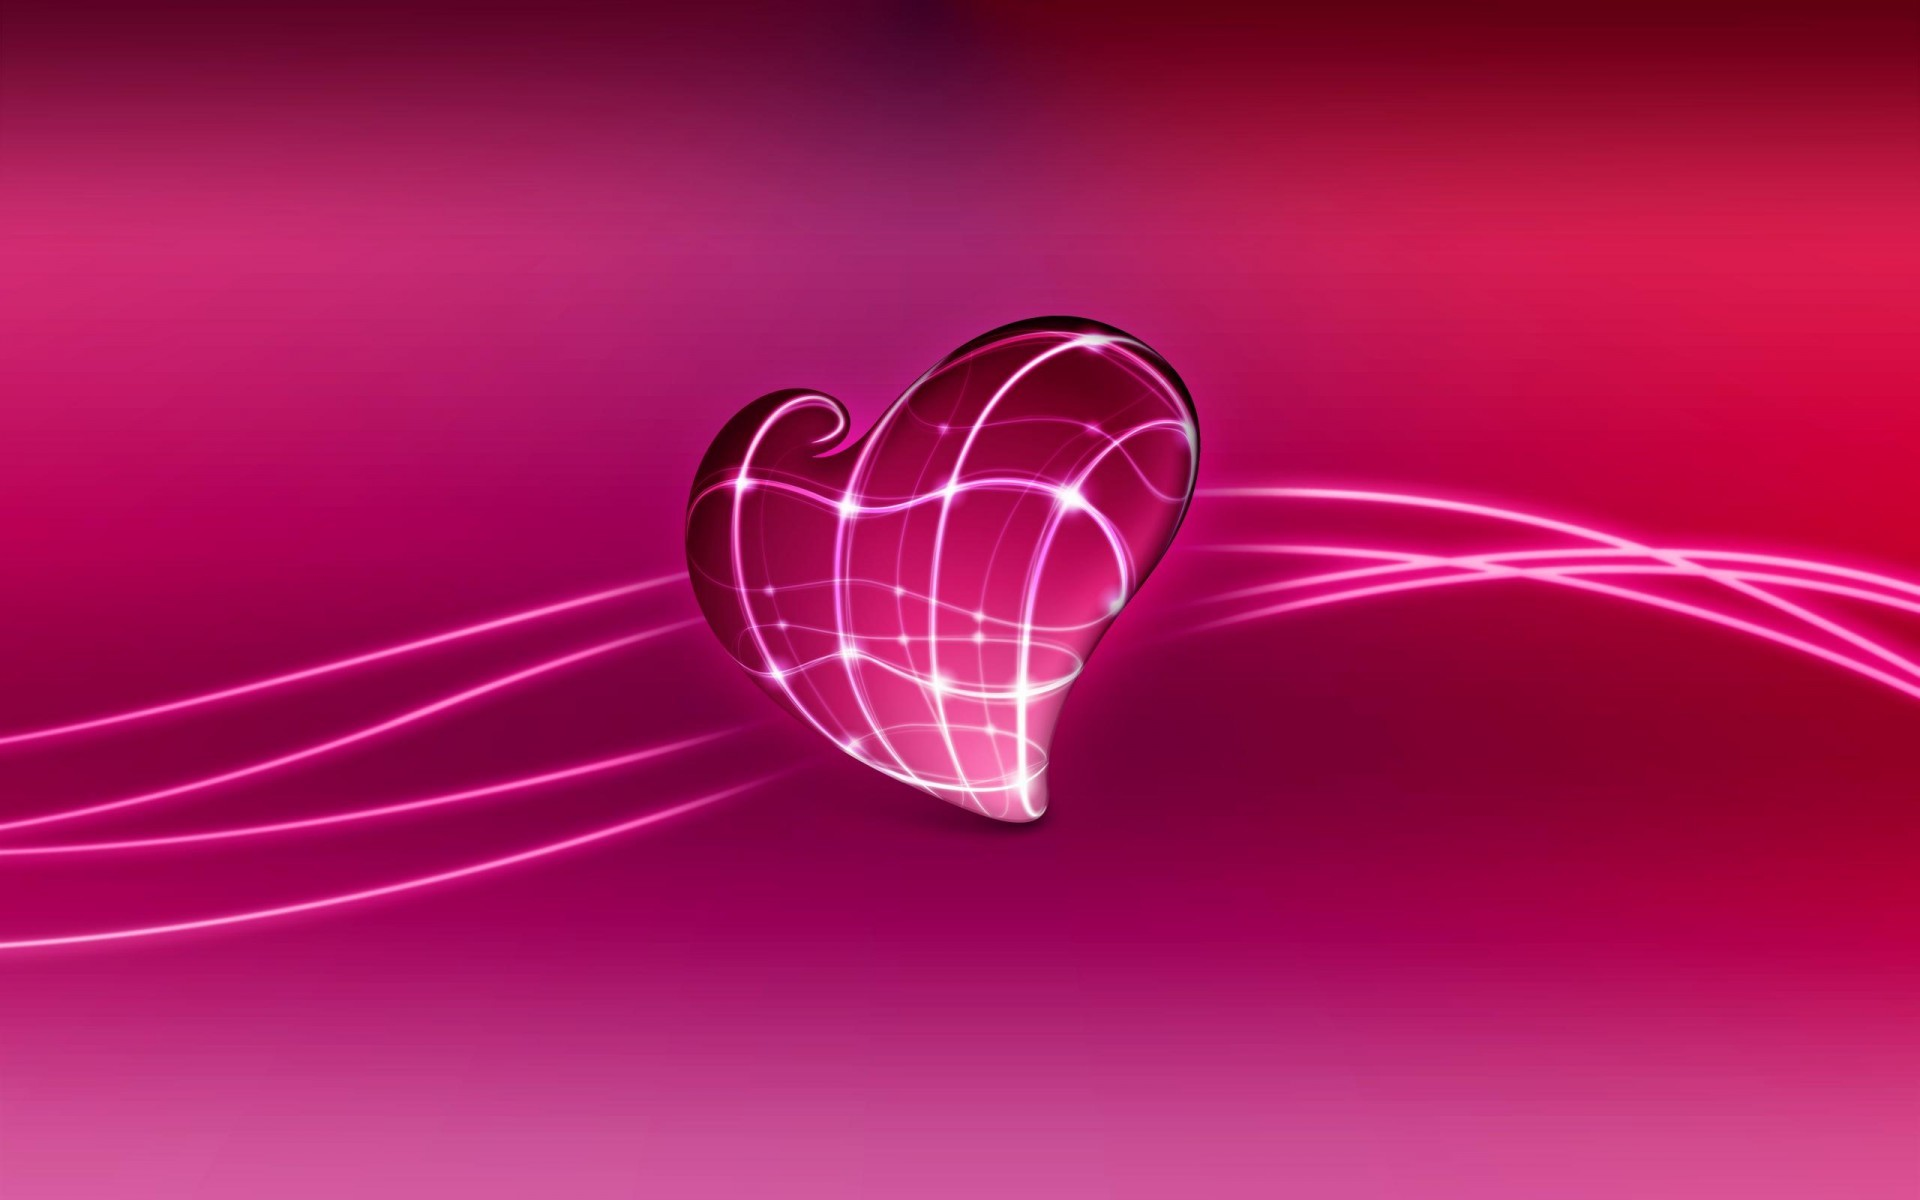 3d Heart Wallpaper Screensavers 54 Images